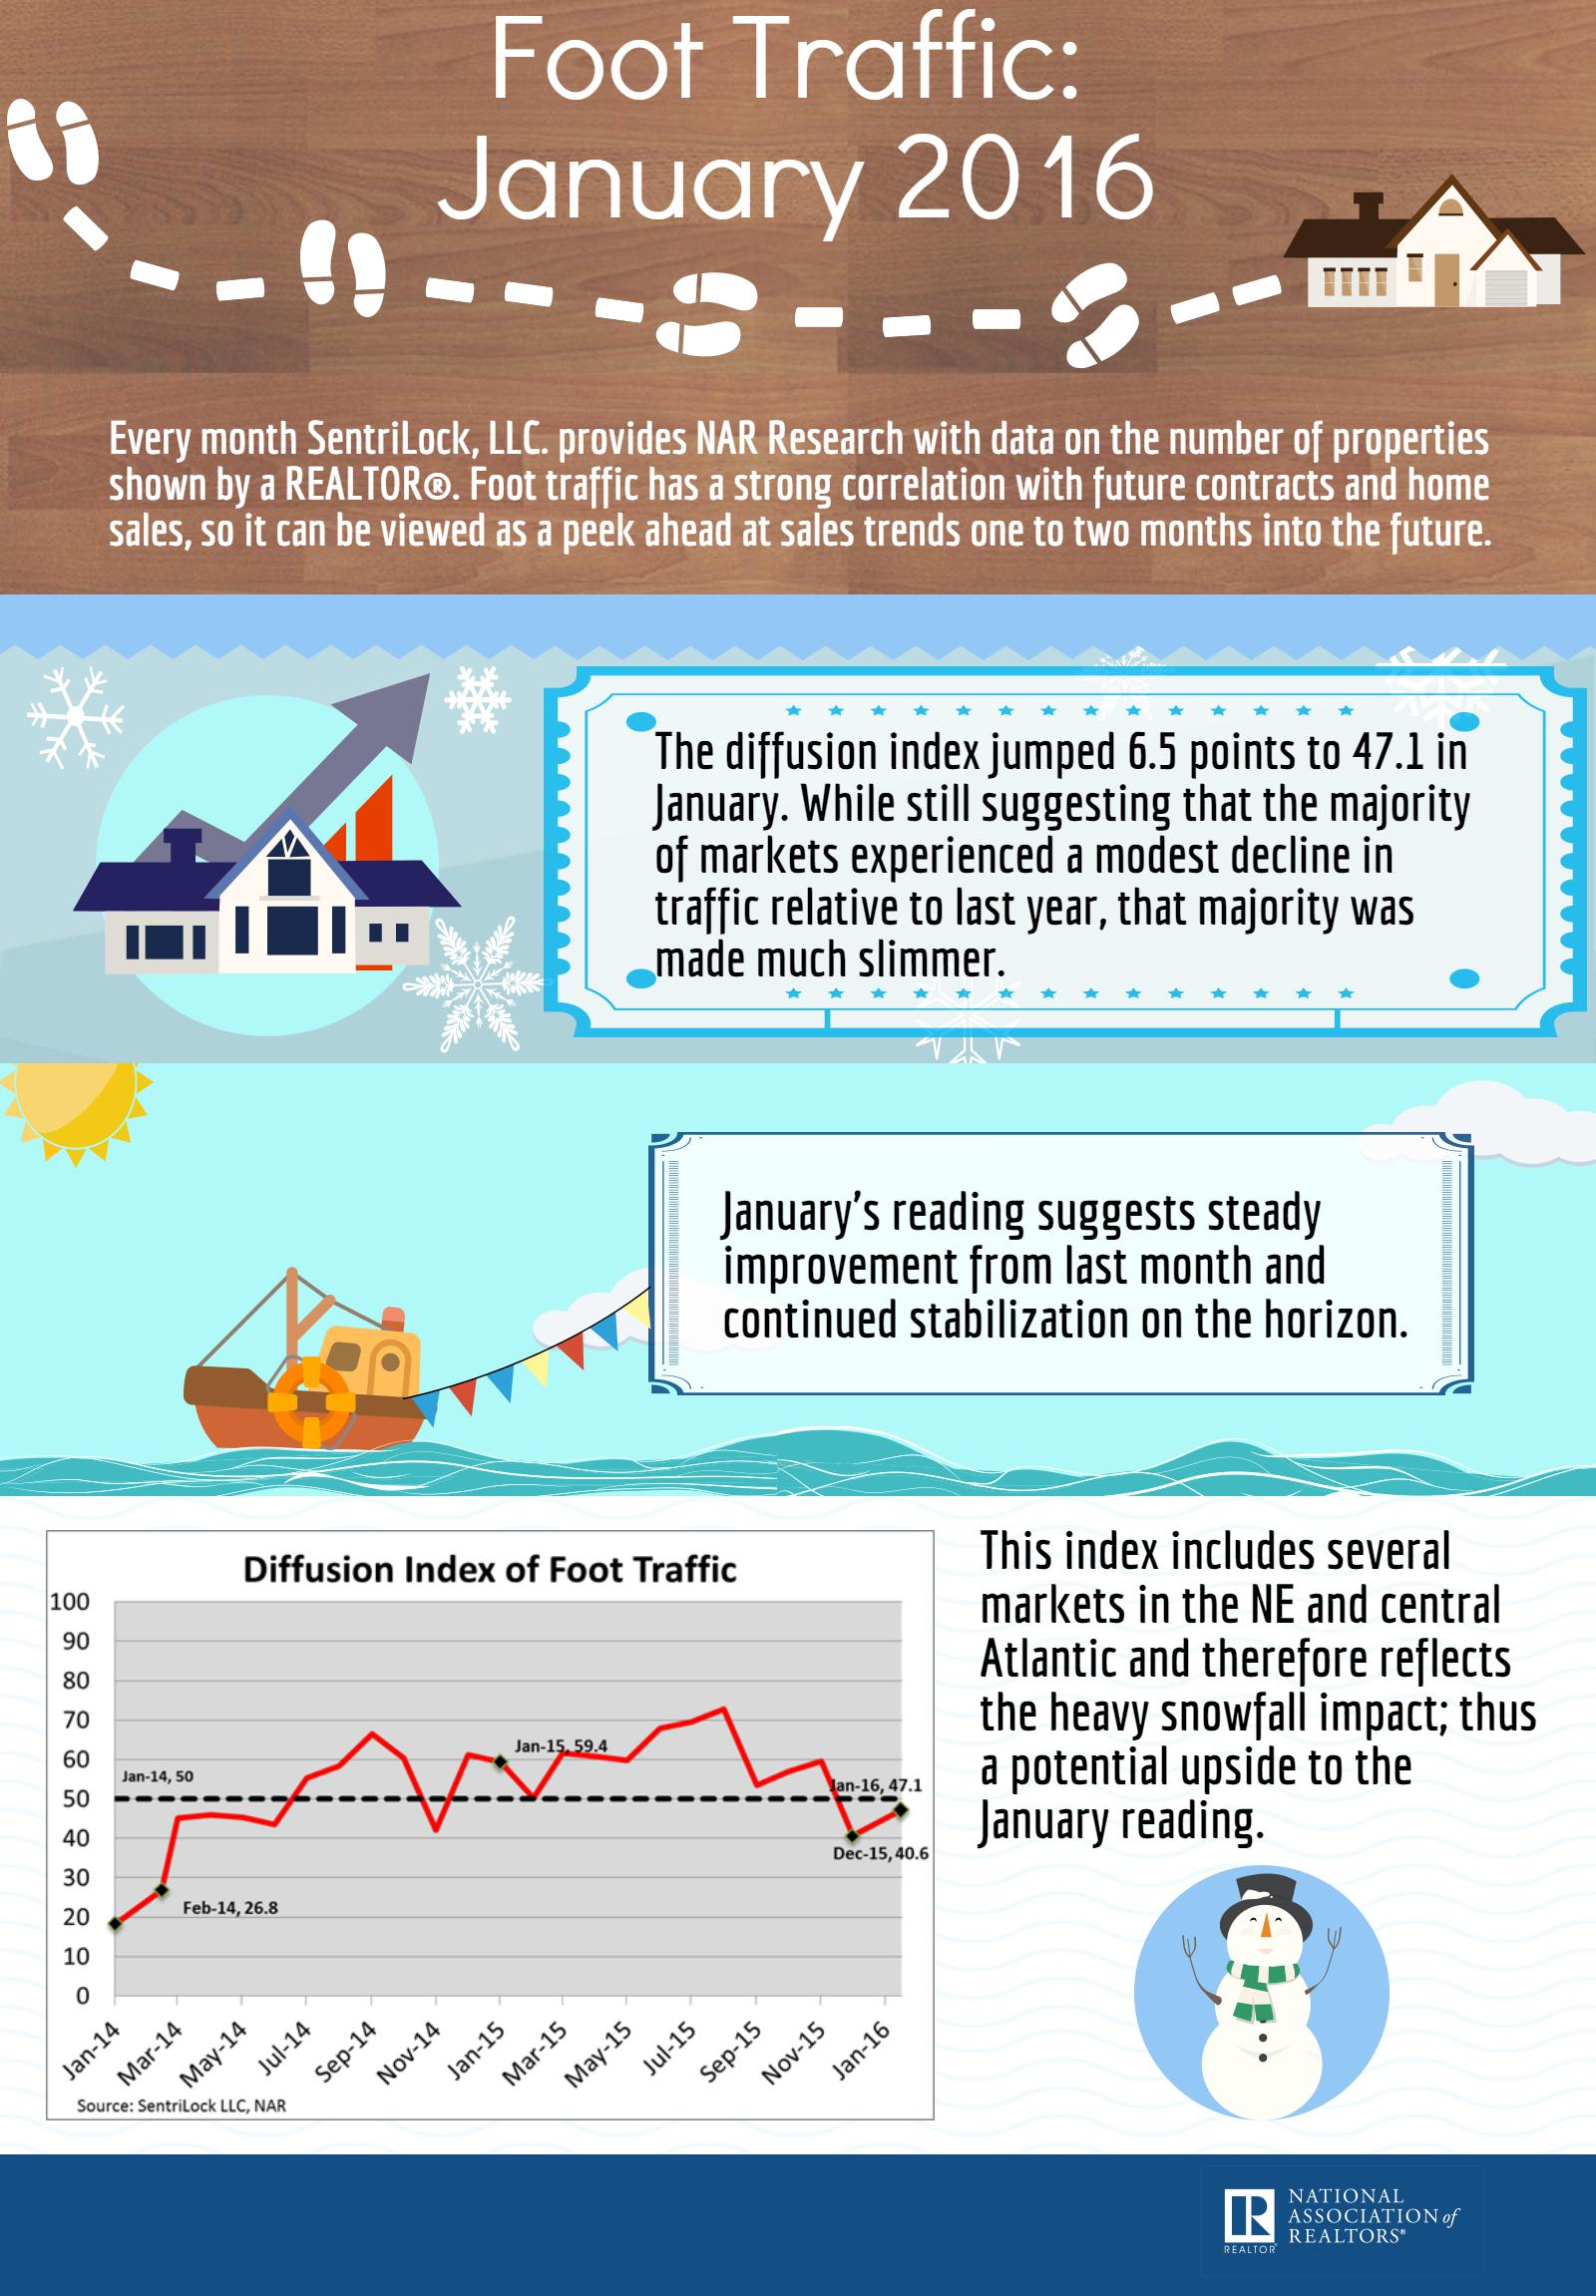 January 2016 Foot Traffic infographic